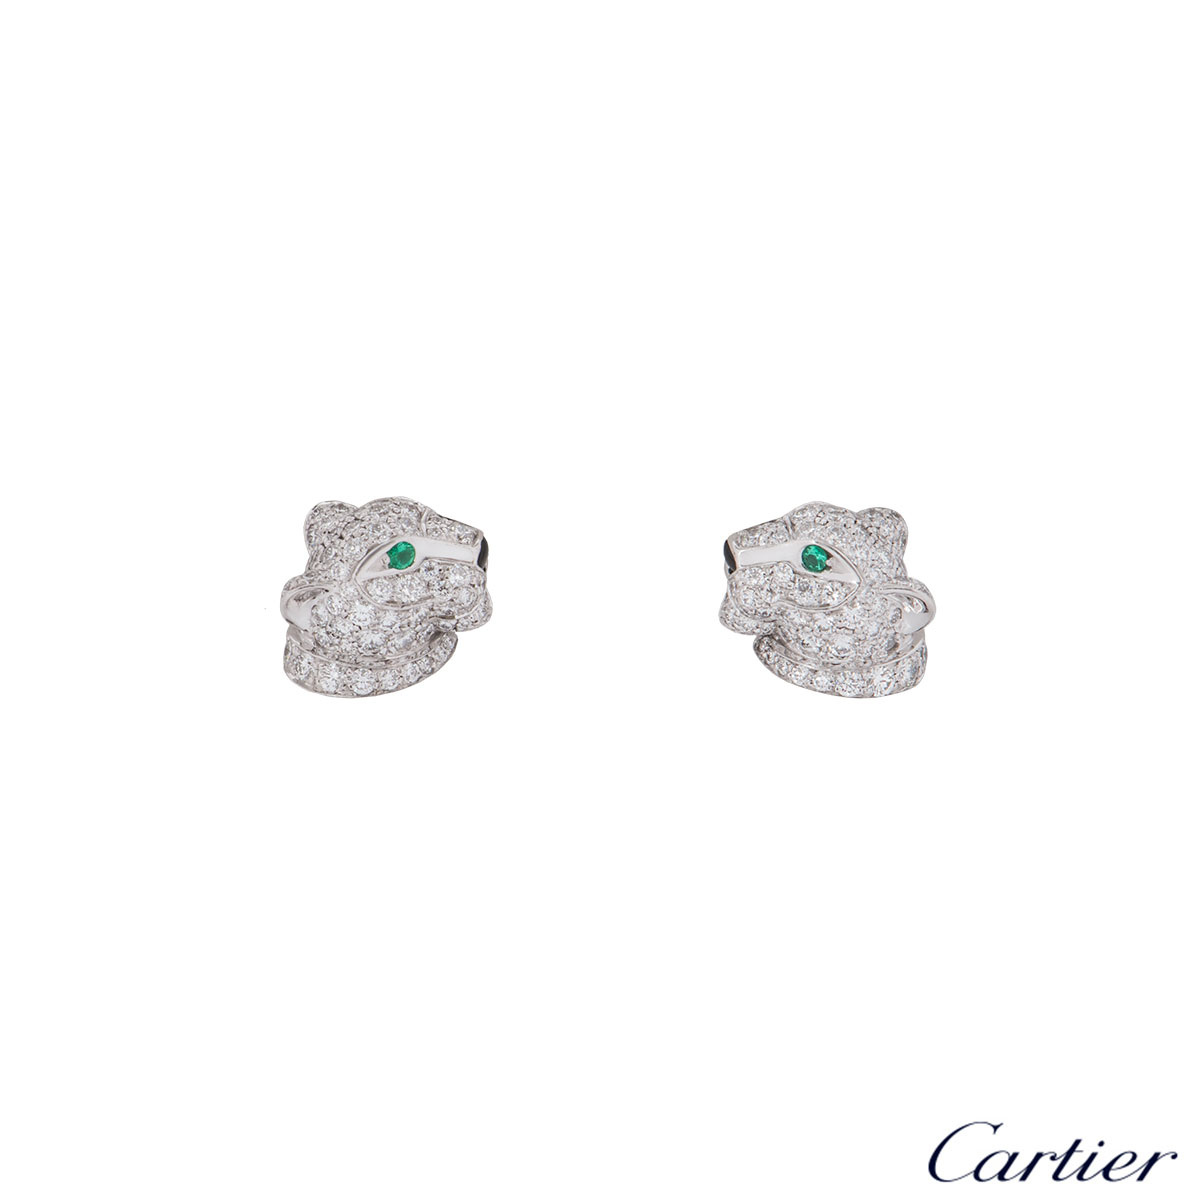 Cartier White Gold Panthere De Cartier Earrings N8050700